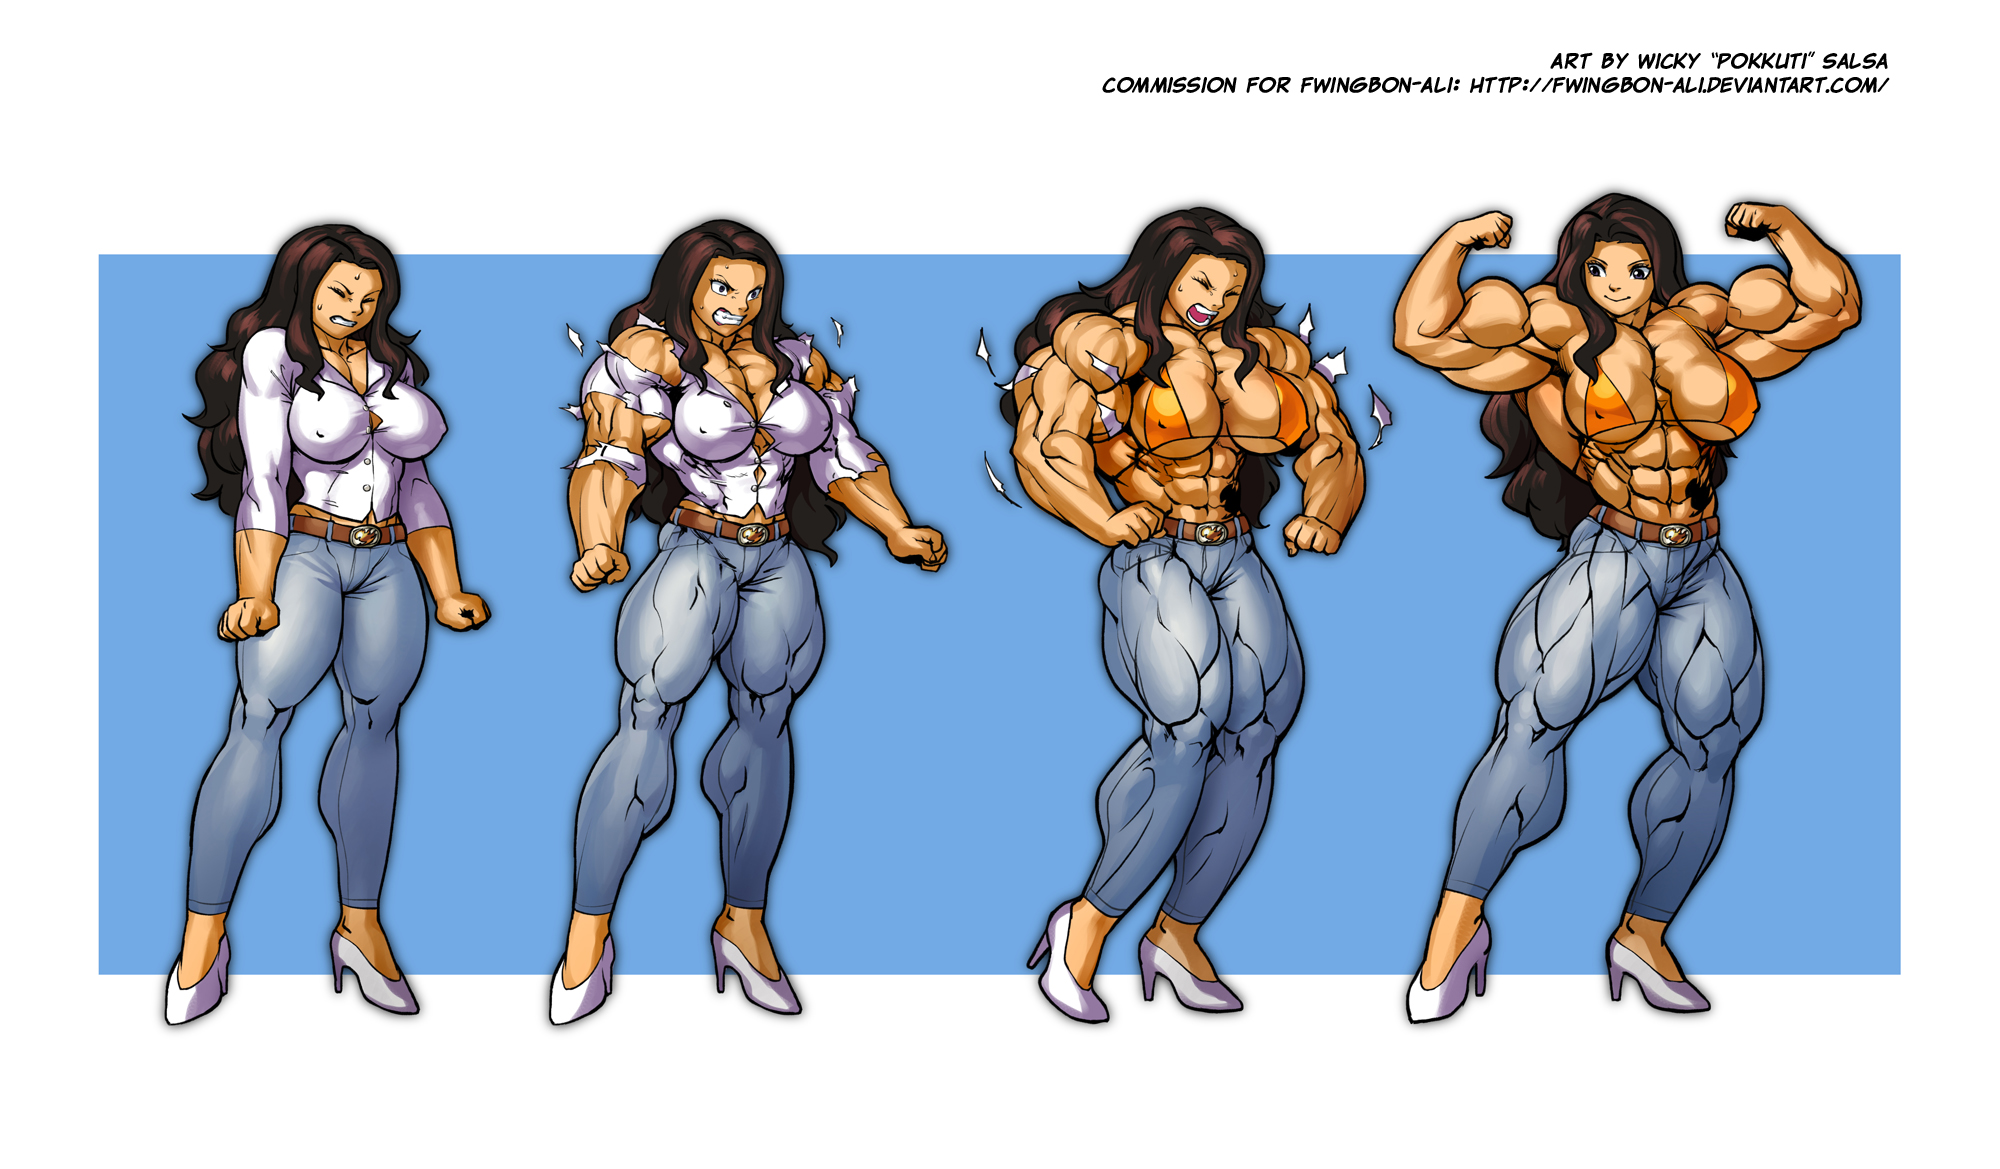 buff women | femuscleblog | Page 3